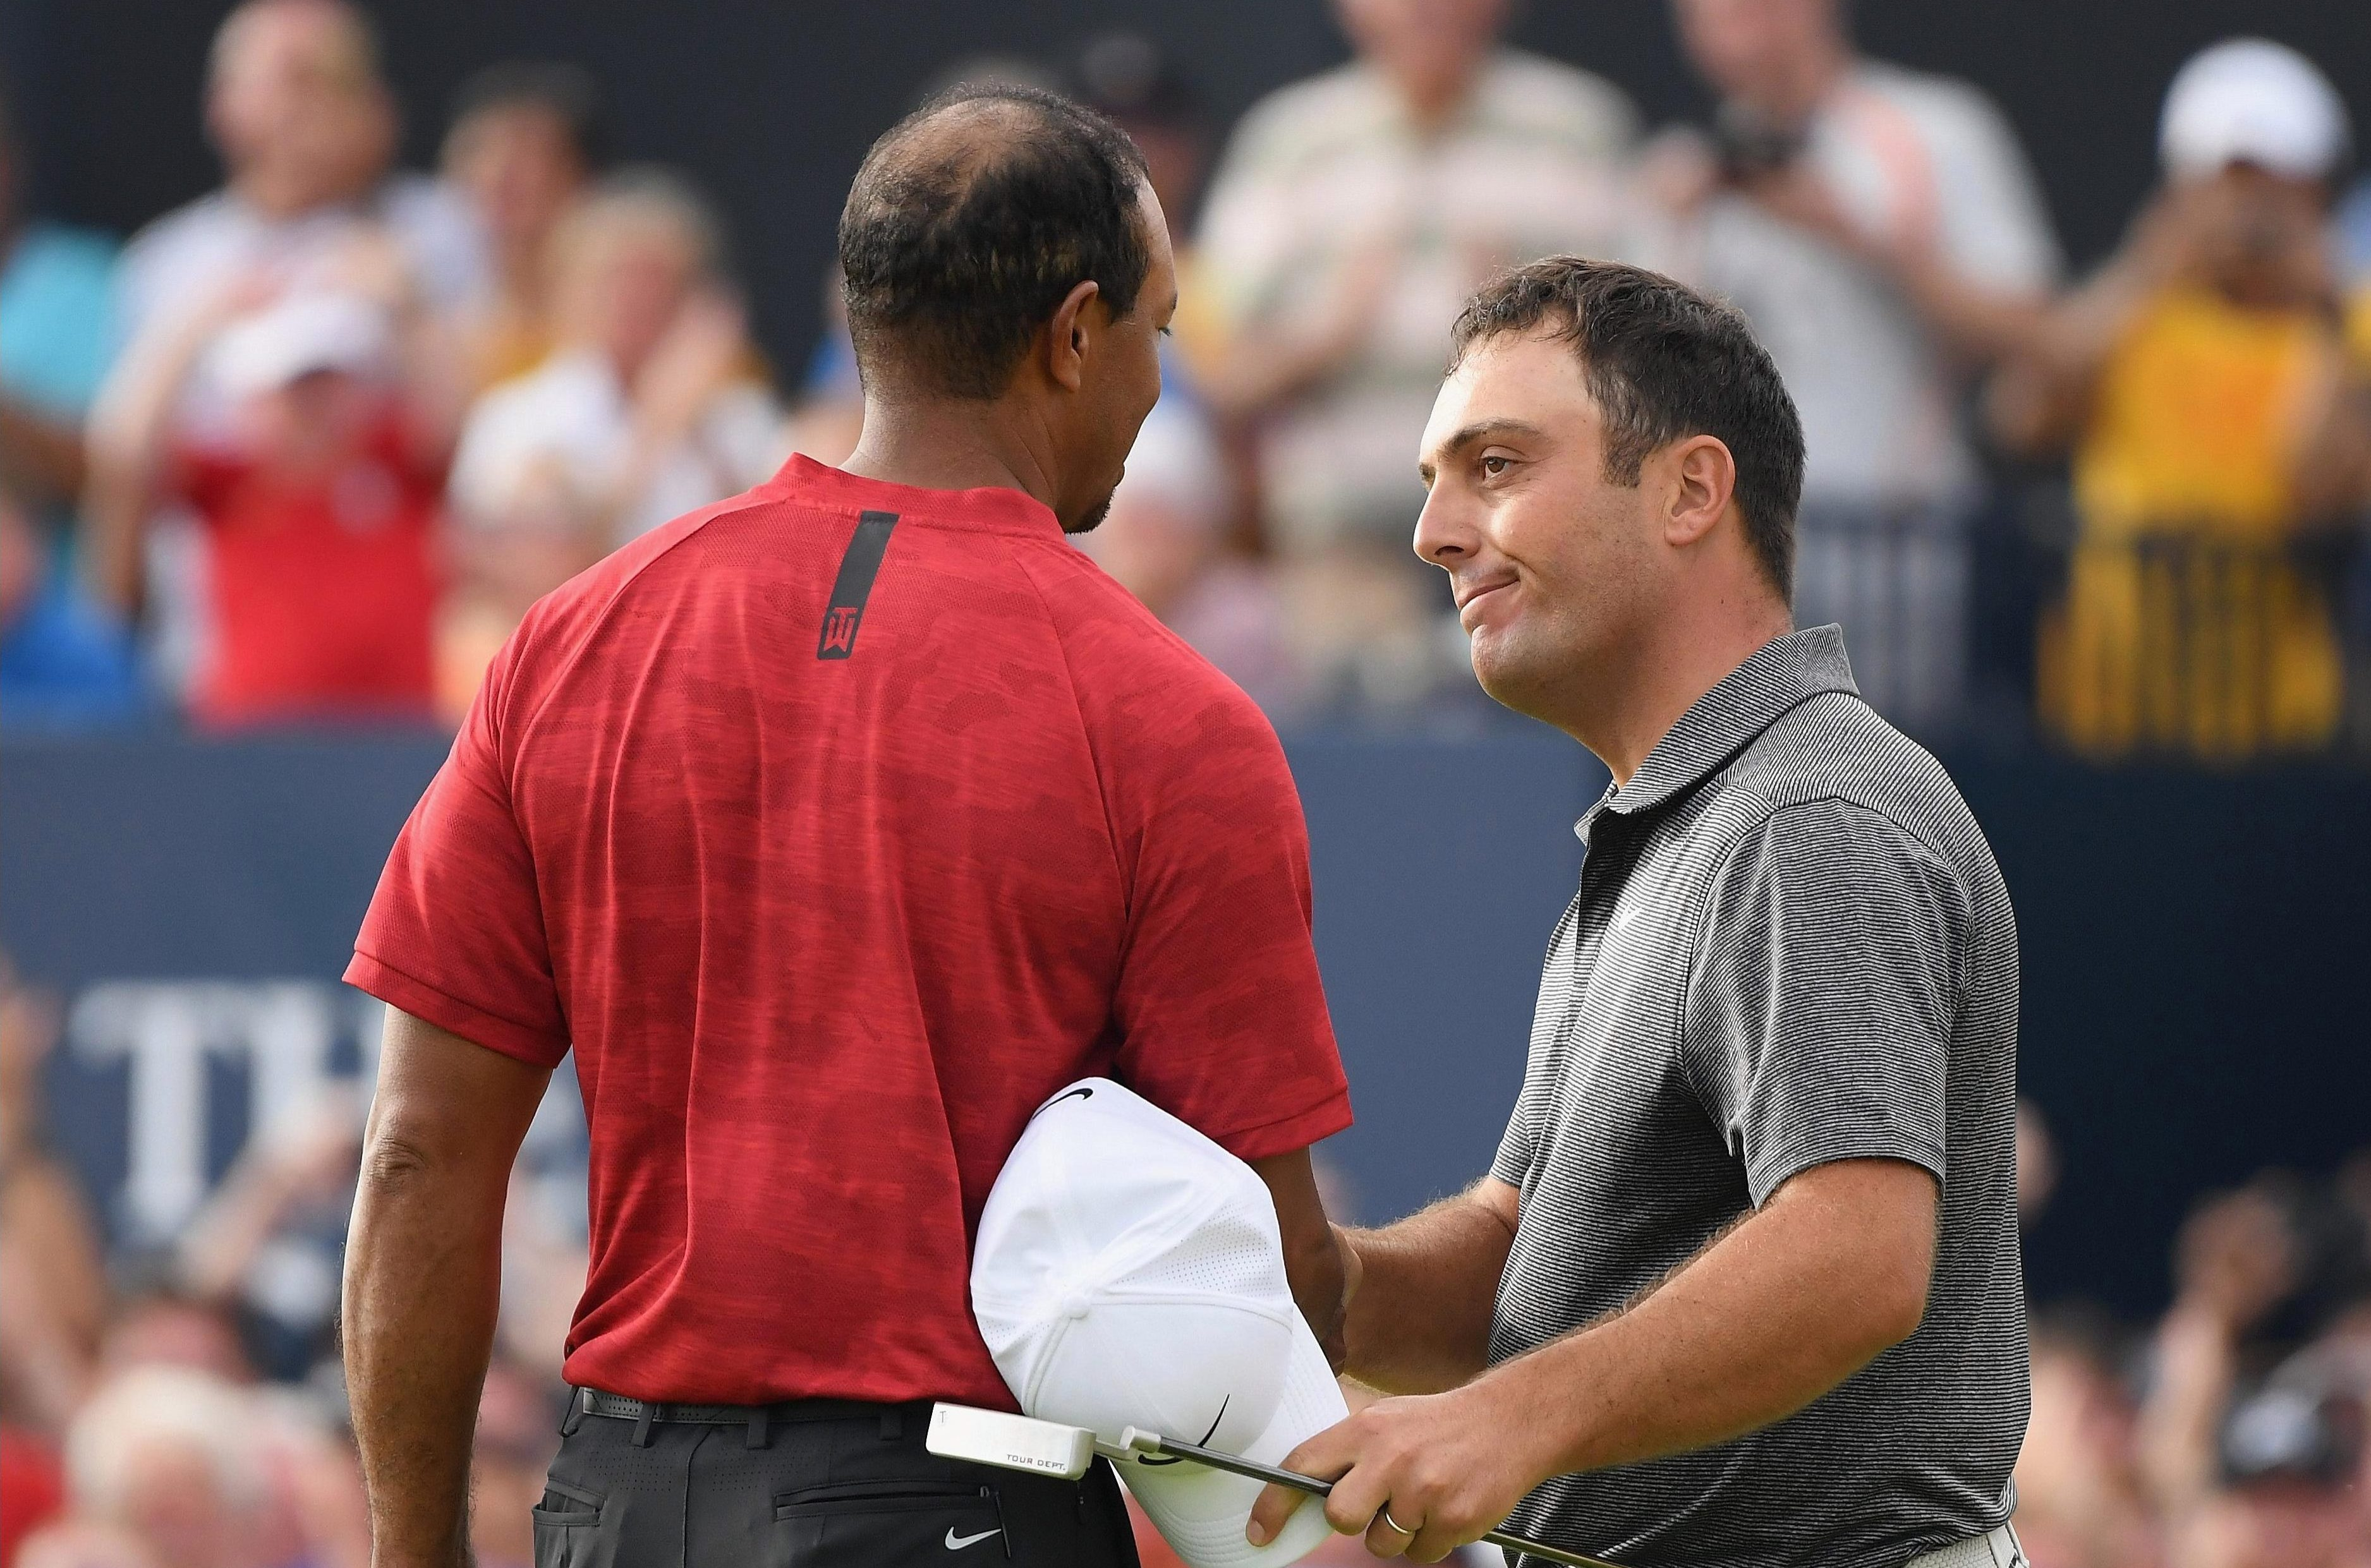 Francesco Molinari, Woods playing partner on the final day, went on to claim the Claret Jug